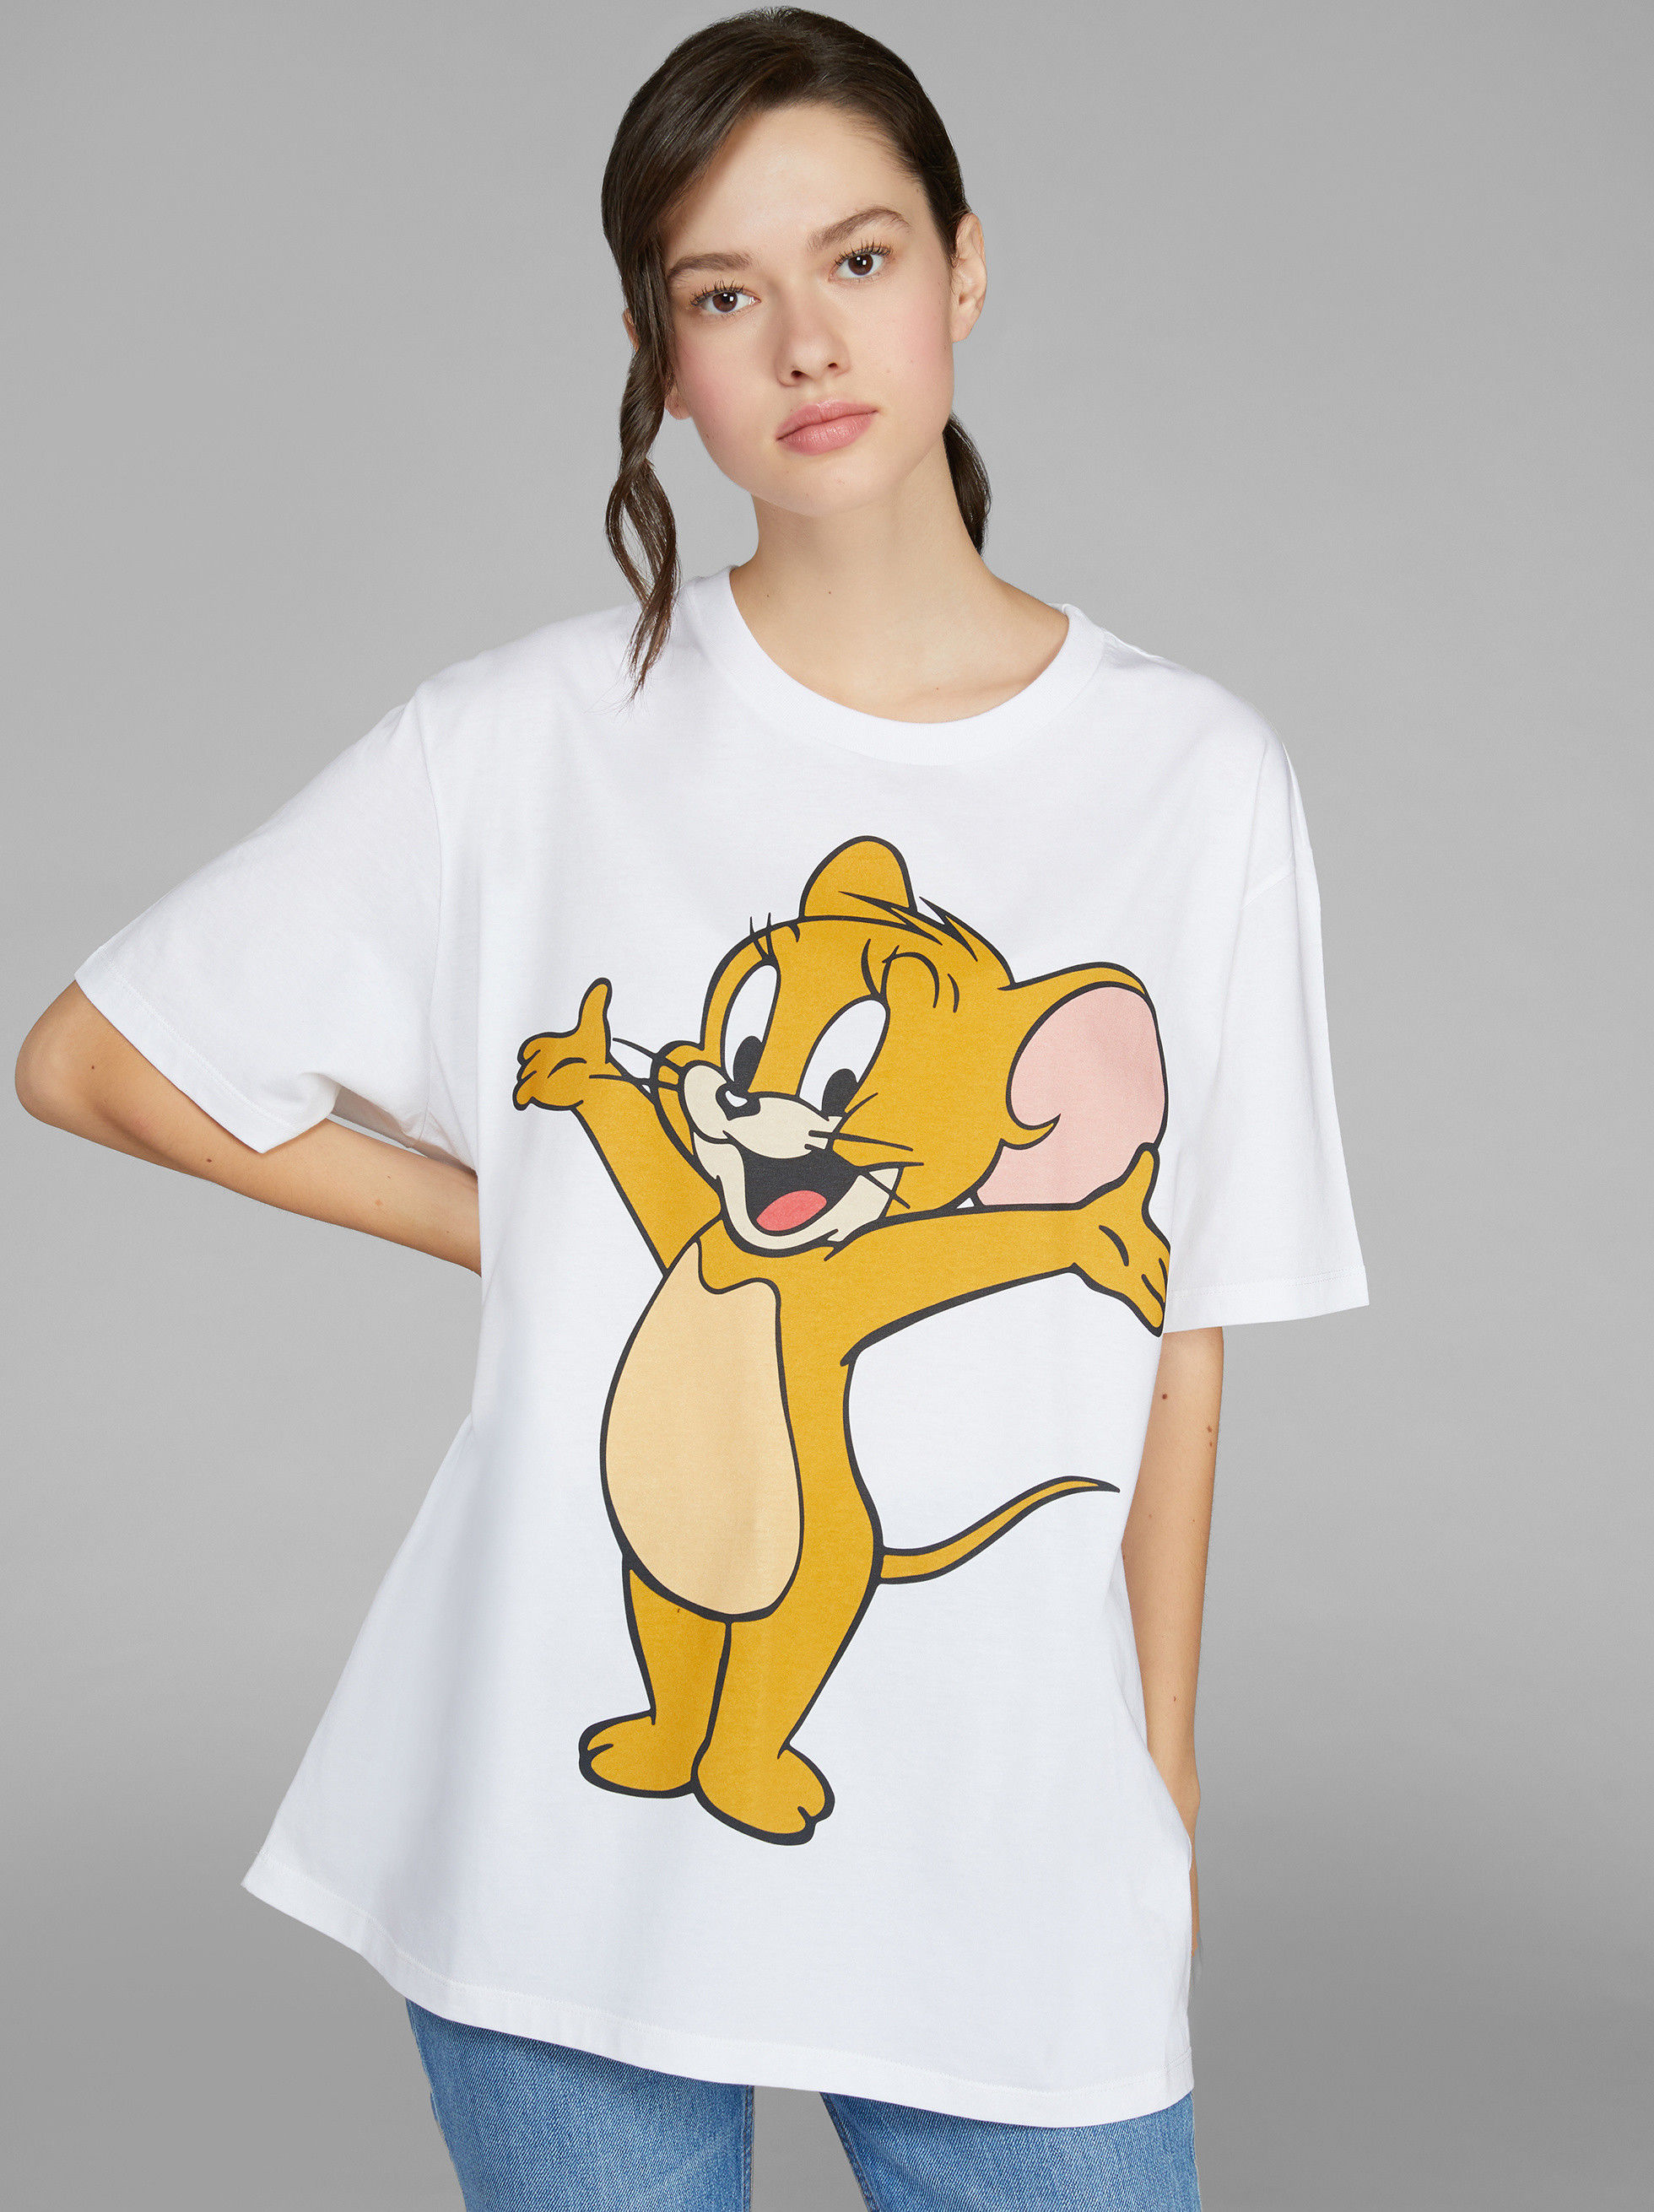 T-SHIRT JERRY